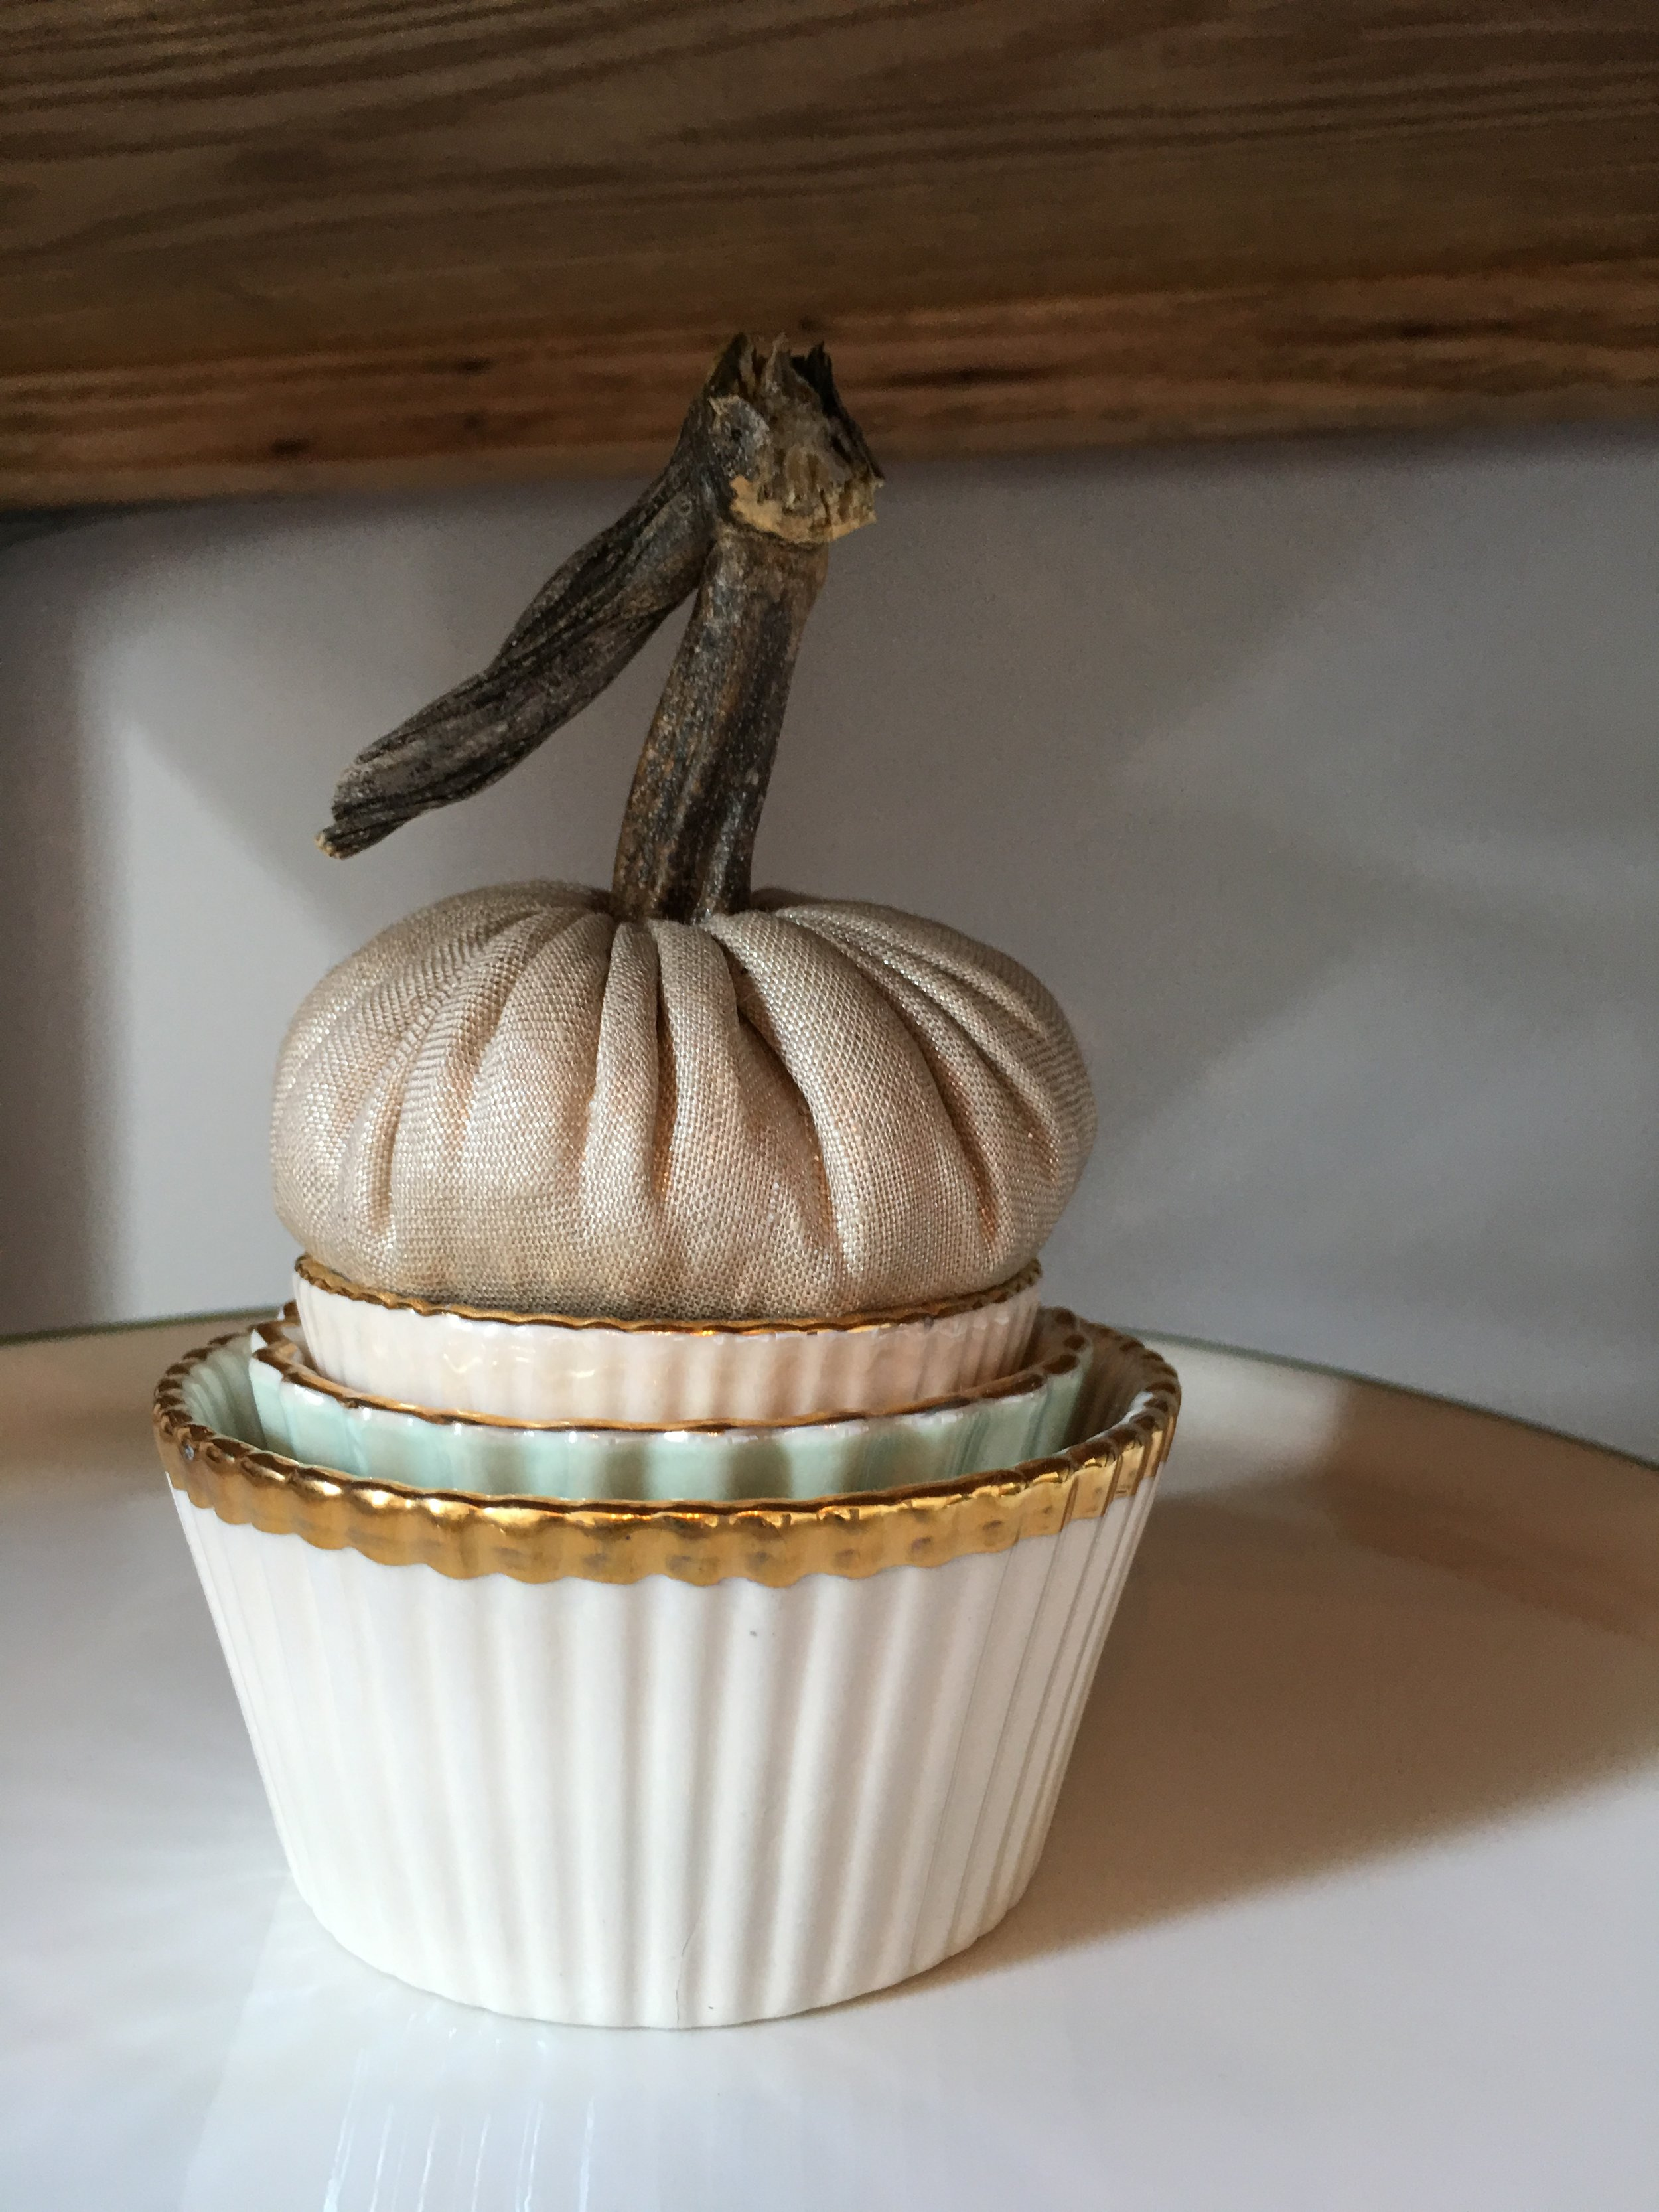 Well hey y'all!! Happy Fall! I mean it is really starting to feel like it. The leaves are falling and that crisp cool feel is in the air. Pumpkins are flooding front porches and pies are in the oven. I can't wait to share all our Fall decor with you very soon!!